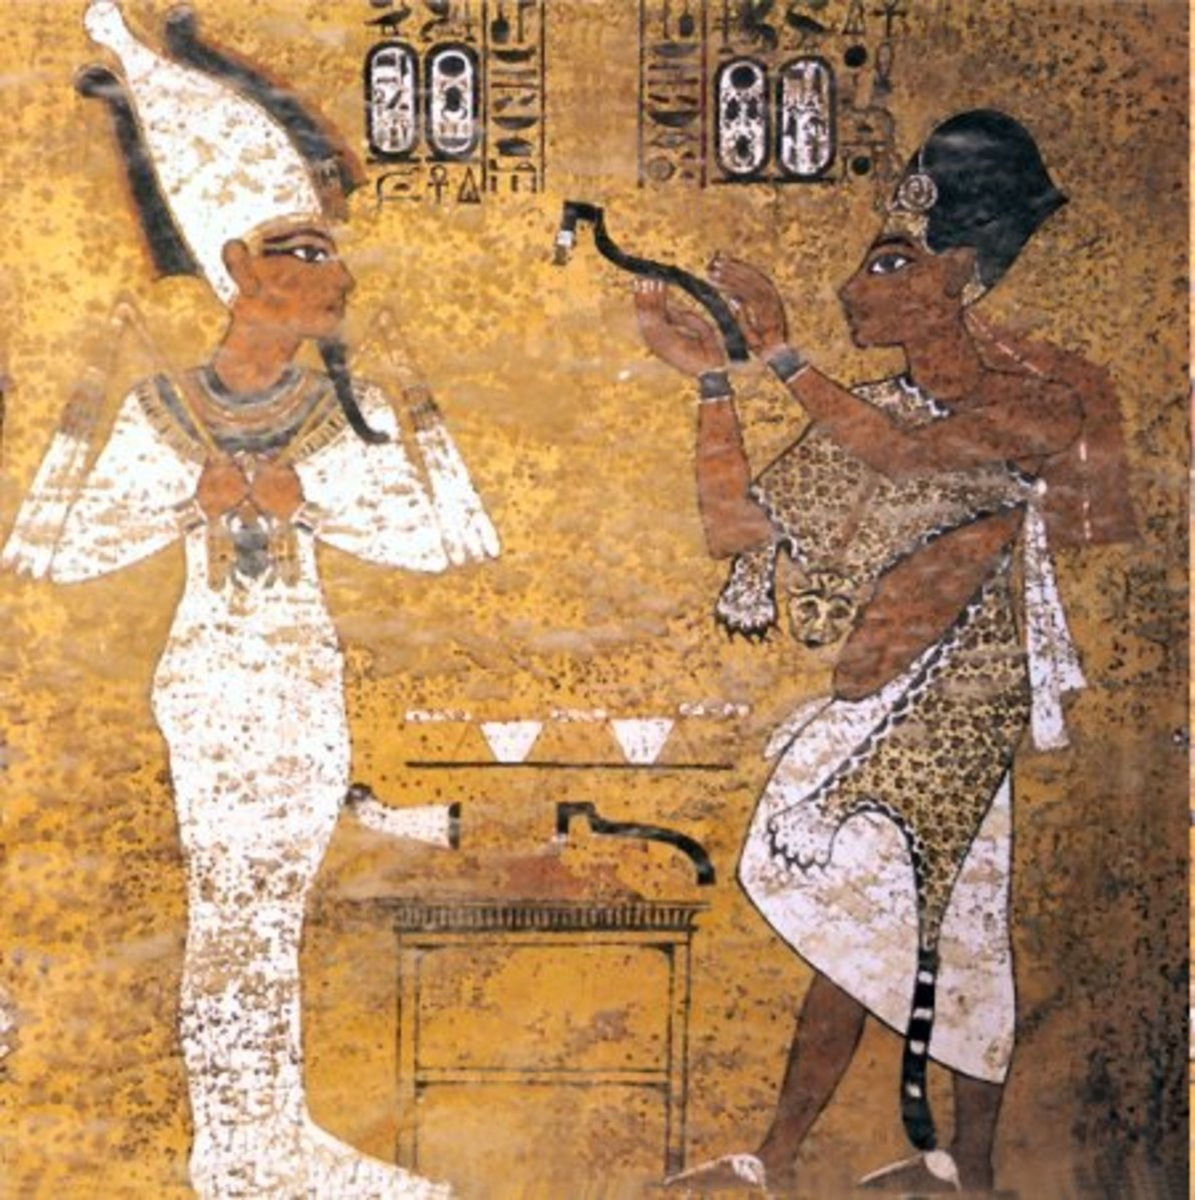 Ay performing the 'opening of the mouth' ritual for Tutankhamun